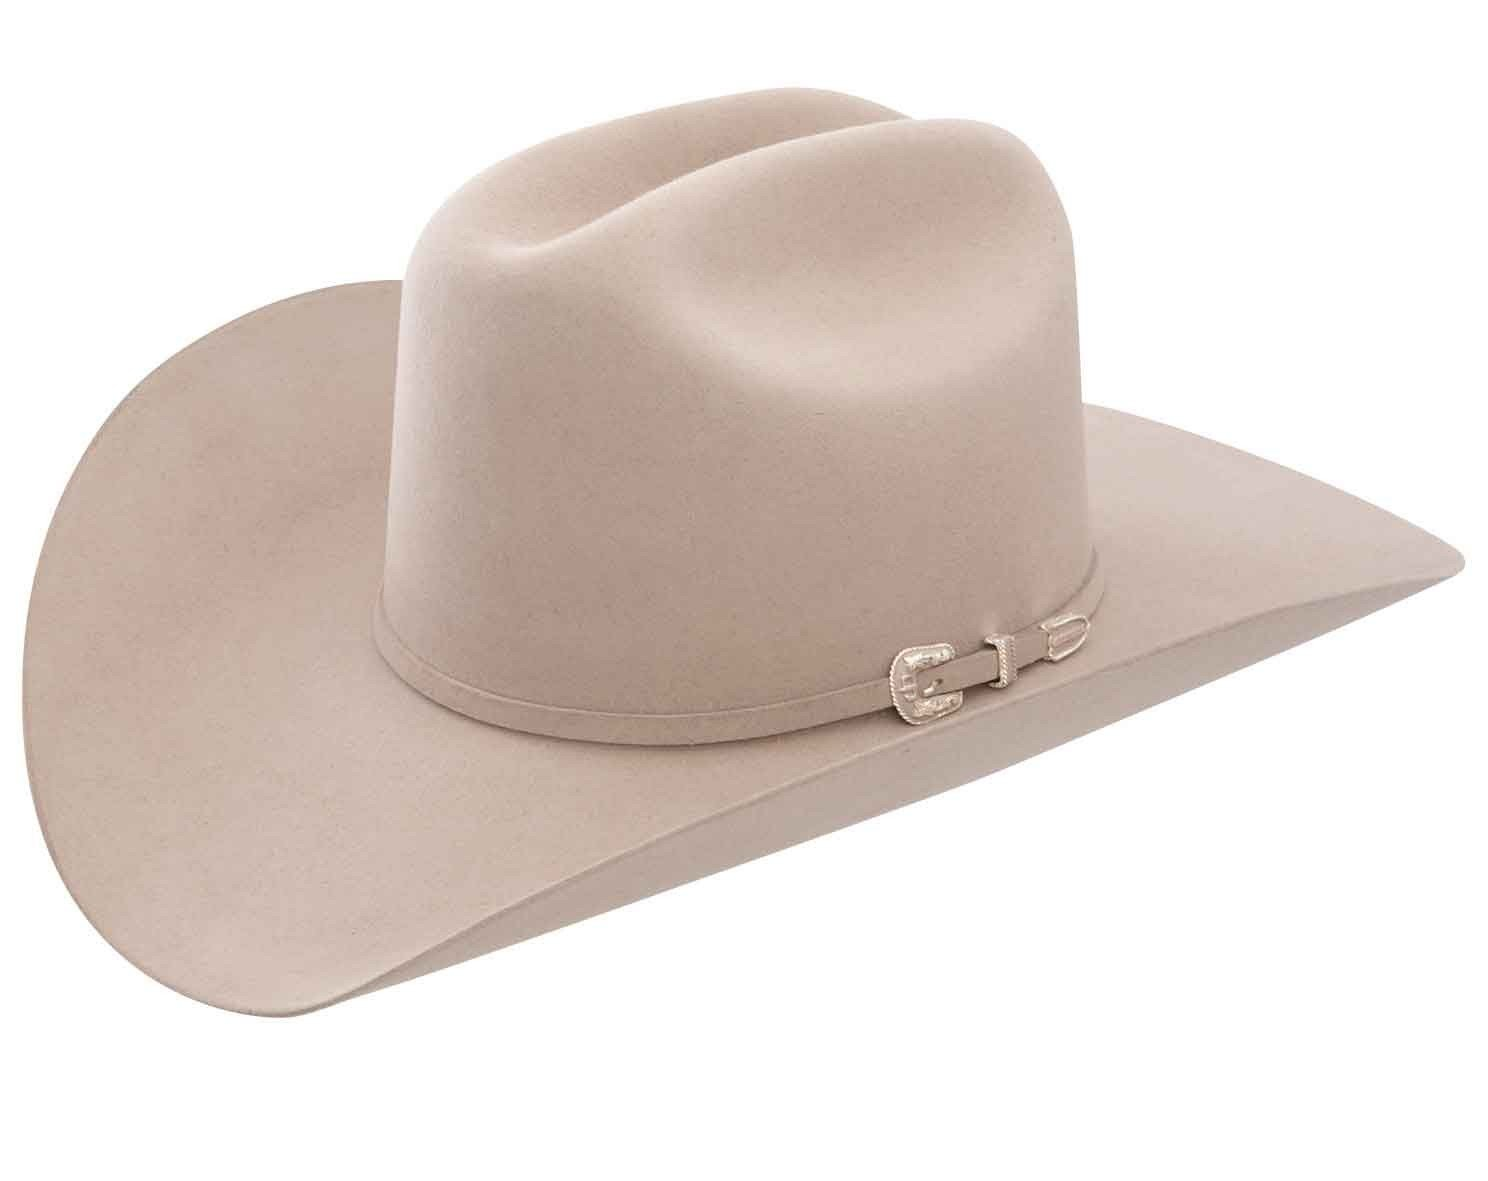 Stetson Skyline 72 Silver Belly,7.125